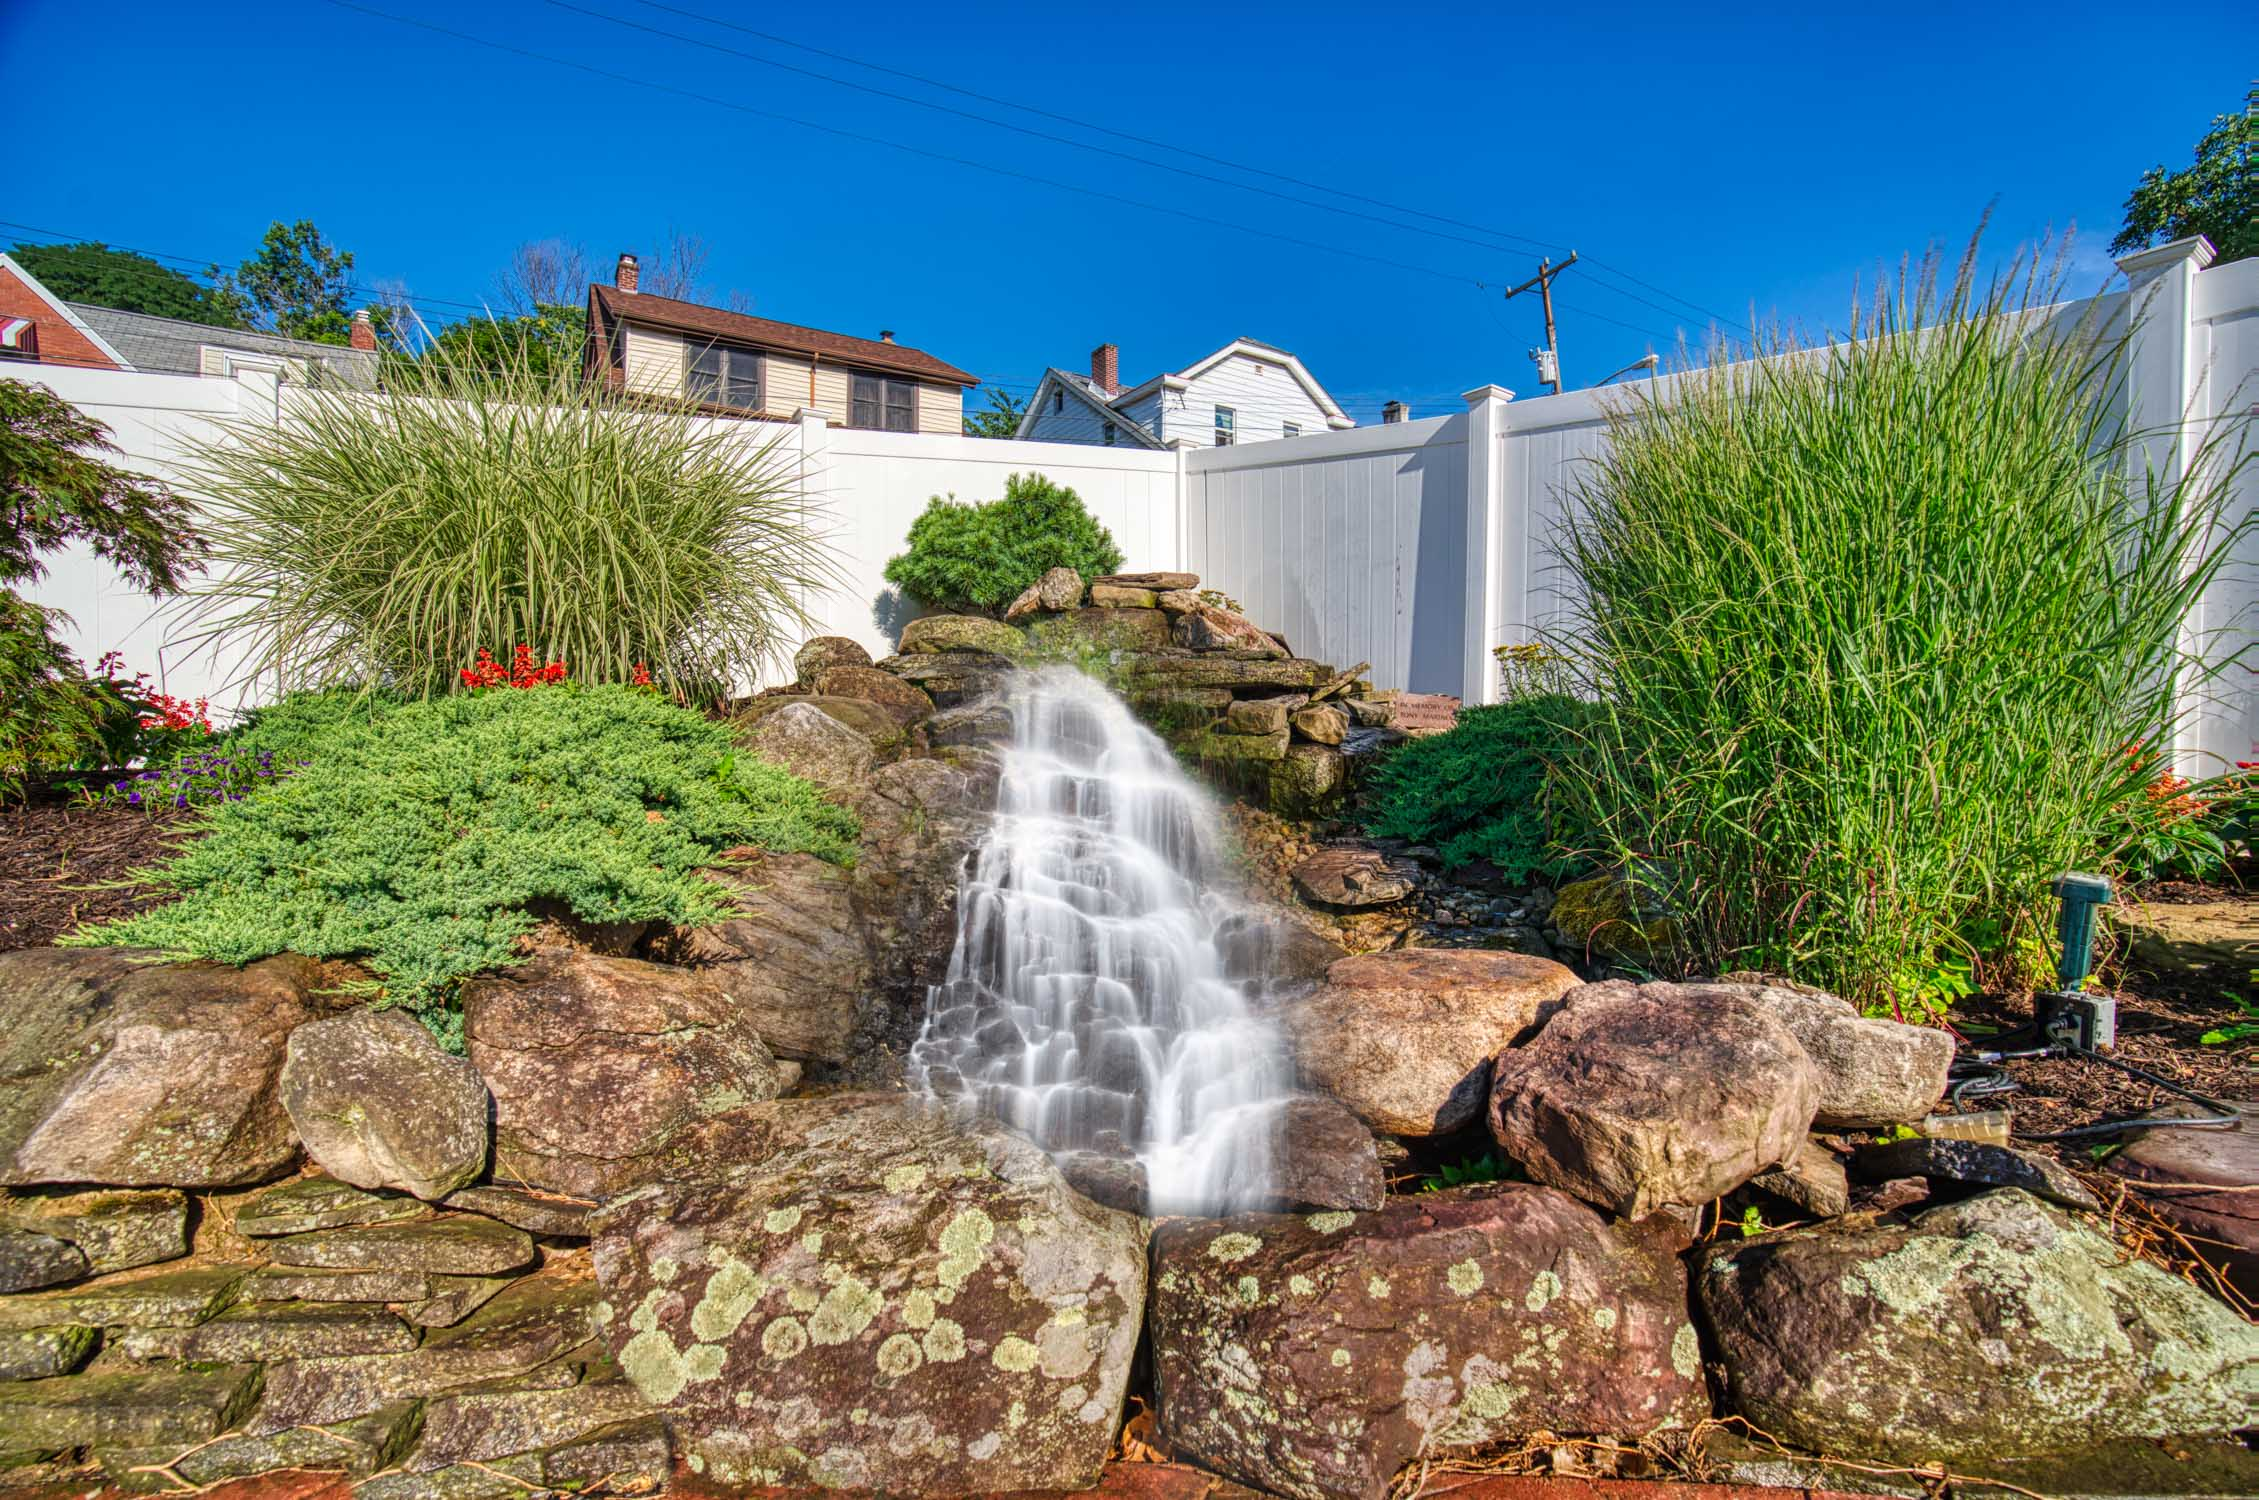 Gazebo Garden Waterfall